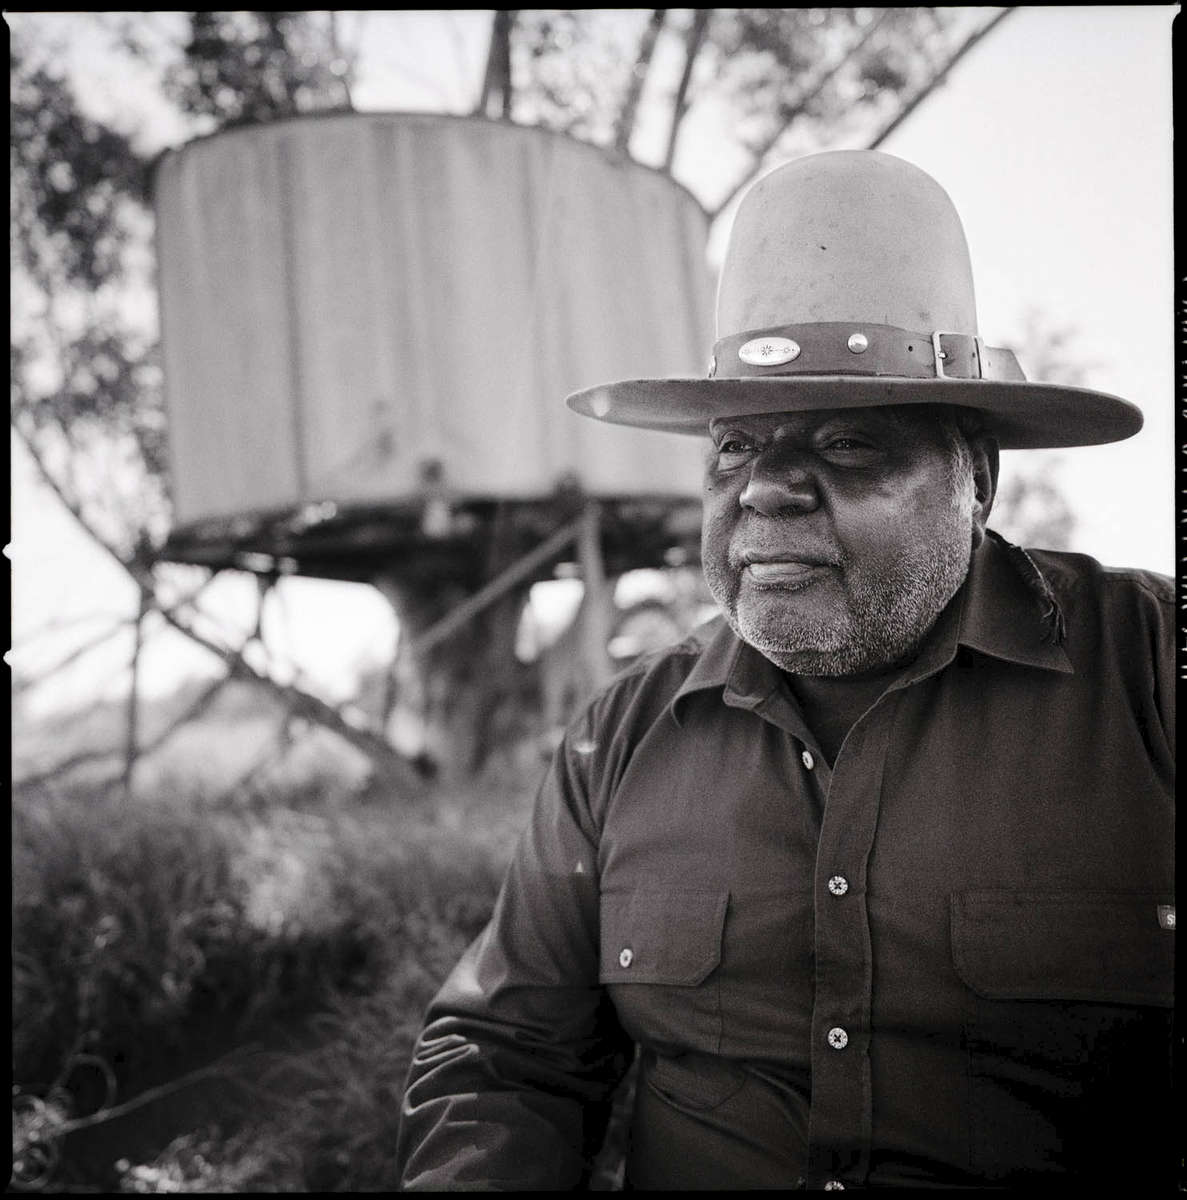 Marlbatharndu Wanggagu | Once Upon a Time in the West explores histories and stories of Aboriginal stockmen, rural, and domestic workers on pastoral stations in the Pilbara during the 20th century. Focusing on the experiences of Banyjima, Yinhawangka, and Nyiyaparli people, the project is the result of an engaged and sustained collaborative partnership between the IBN Aboriginal Corporation and FORM. For the exhibition oral  histories and audio will sit alongside photography and paste-ups by Jetsonorama (USA), a commissioned installation by Reko Rennie (Melbourne), and photography by Claire Martin (Australia).